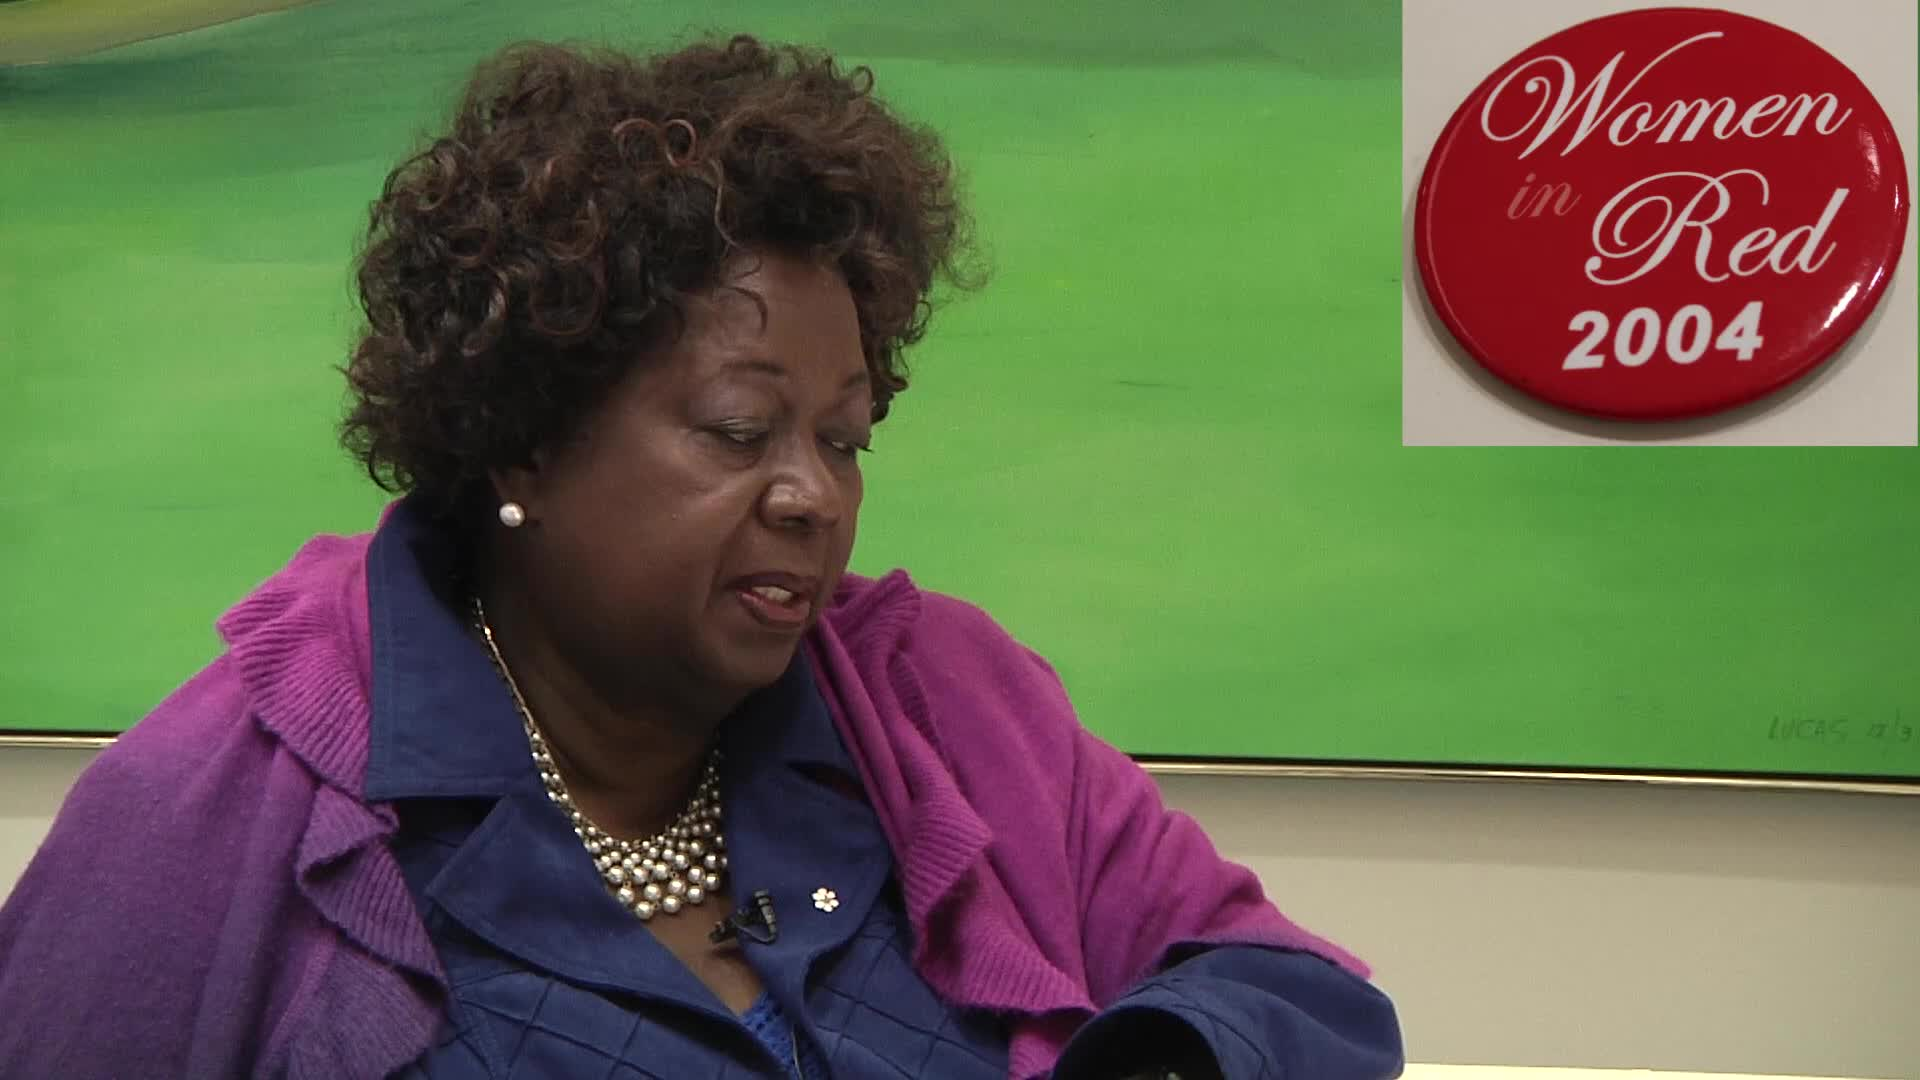 Jean Augustine interview: Women in Red 2004 button